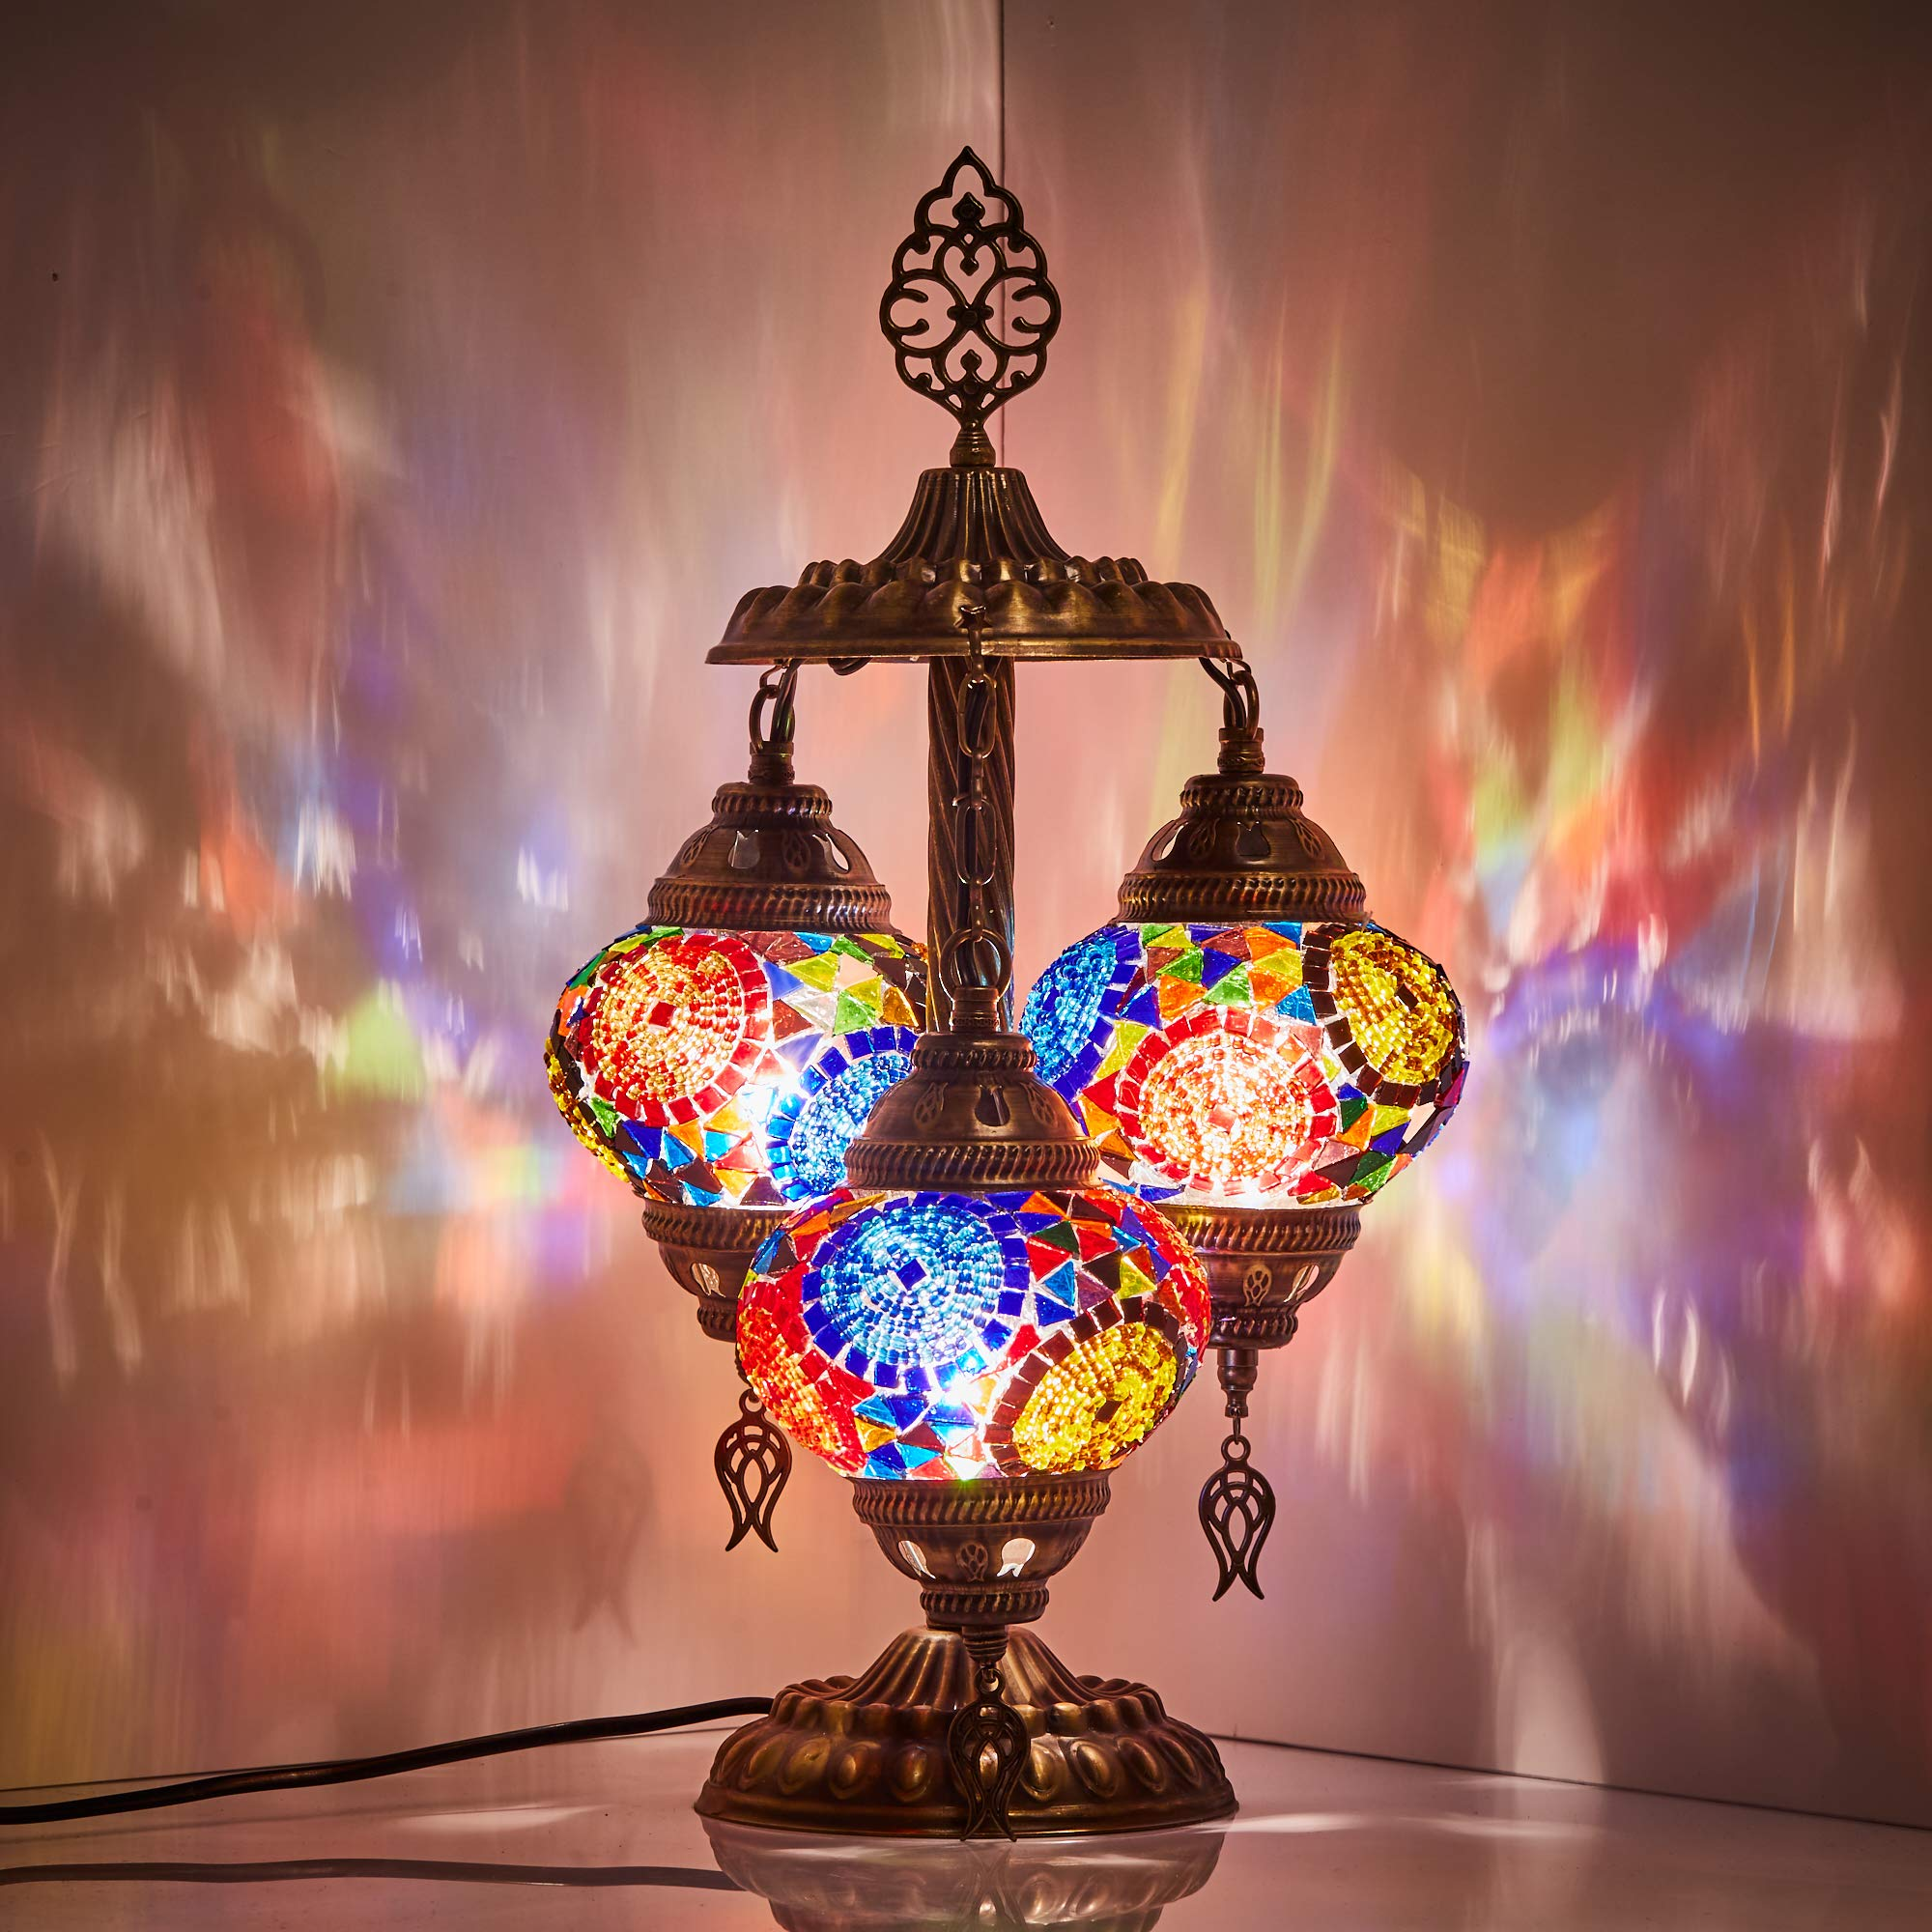 DEMMEX 2019 Stunning 3 Globe Turkish Moroccan Bohemian Table Desk Bedside Night Lamp Light Lampshade with North American Plug & Socket, 19 Inches (Top Mix)